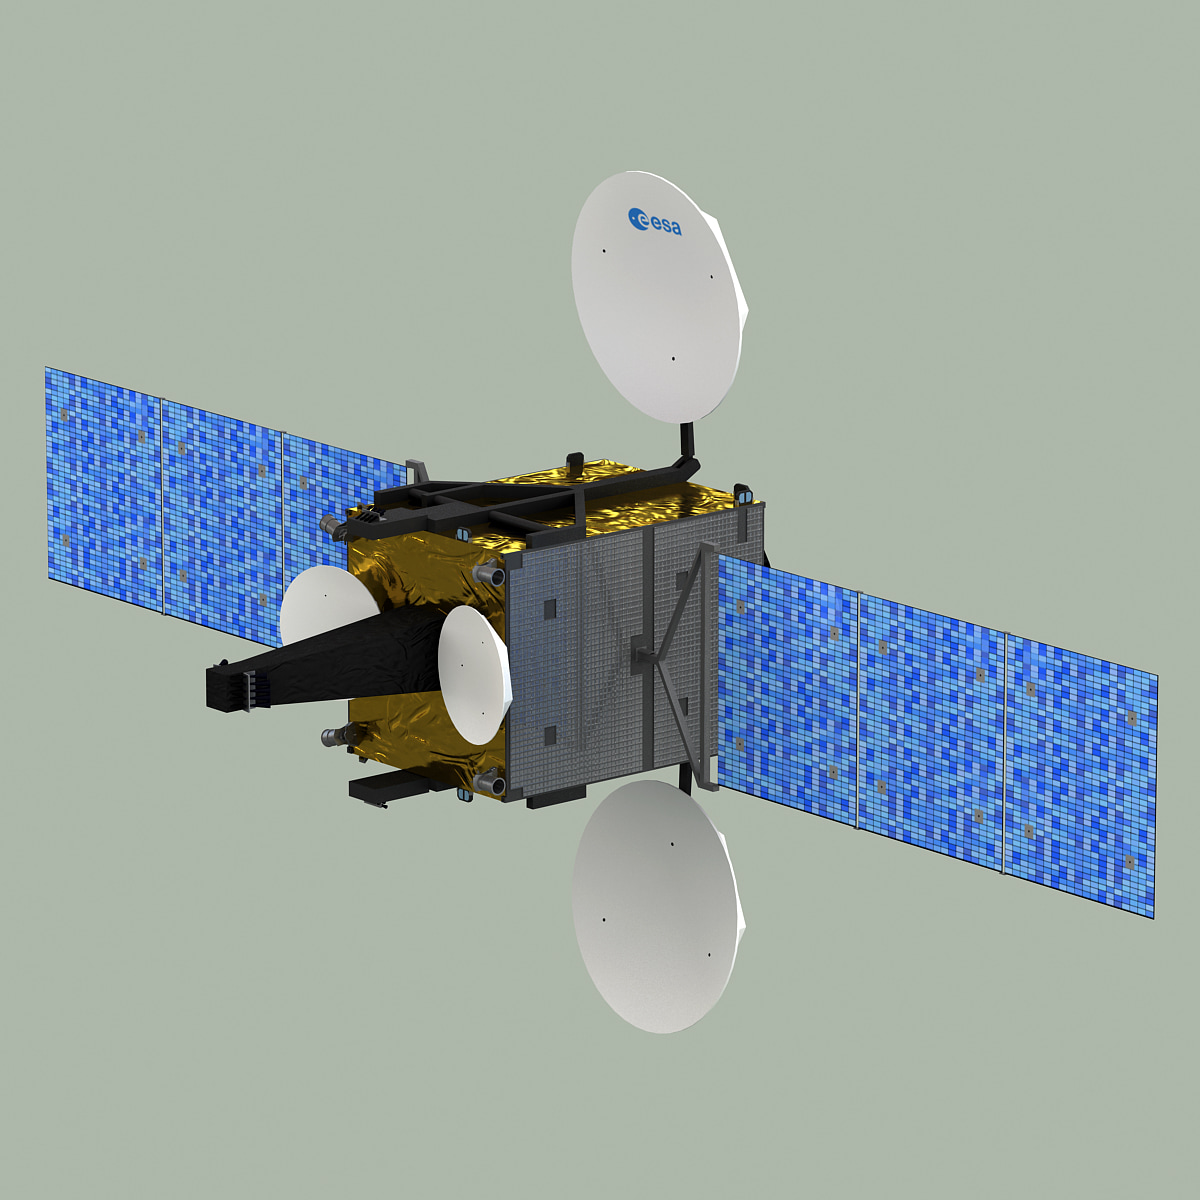 Communications_Satellite_GEO_001.jpg